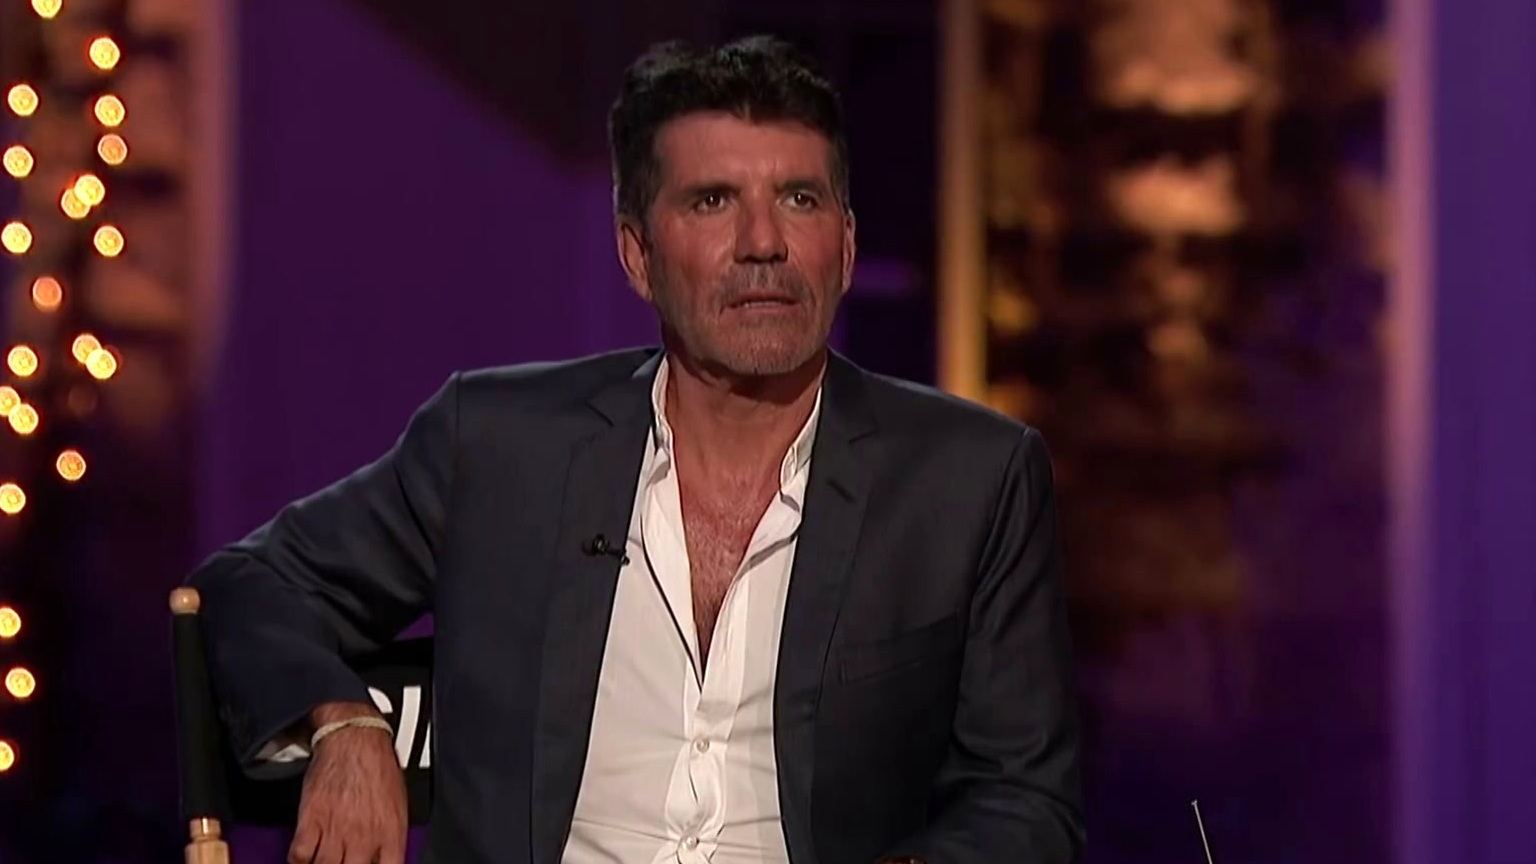 America's Got Talent: Mentalist Max Major Reads Simon Cowell's Mind